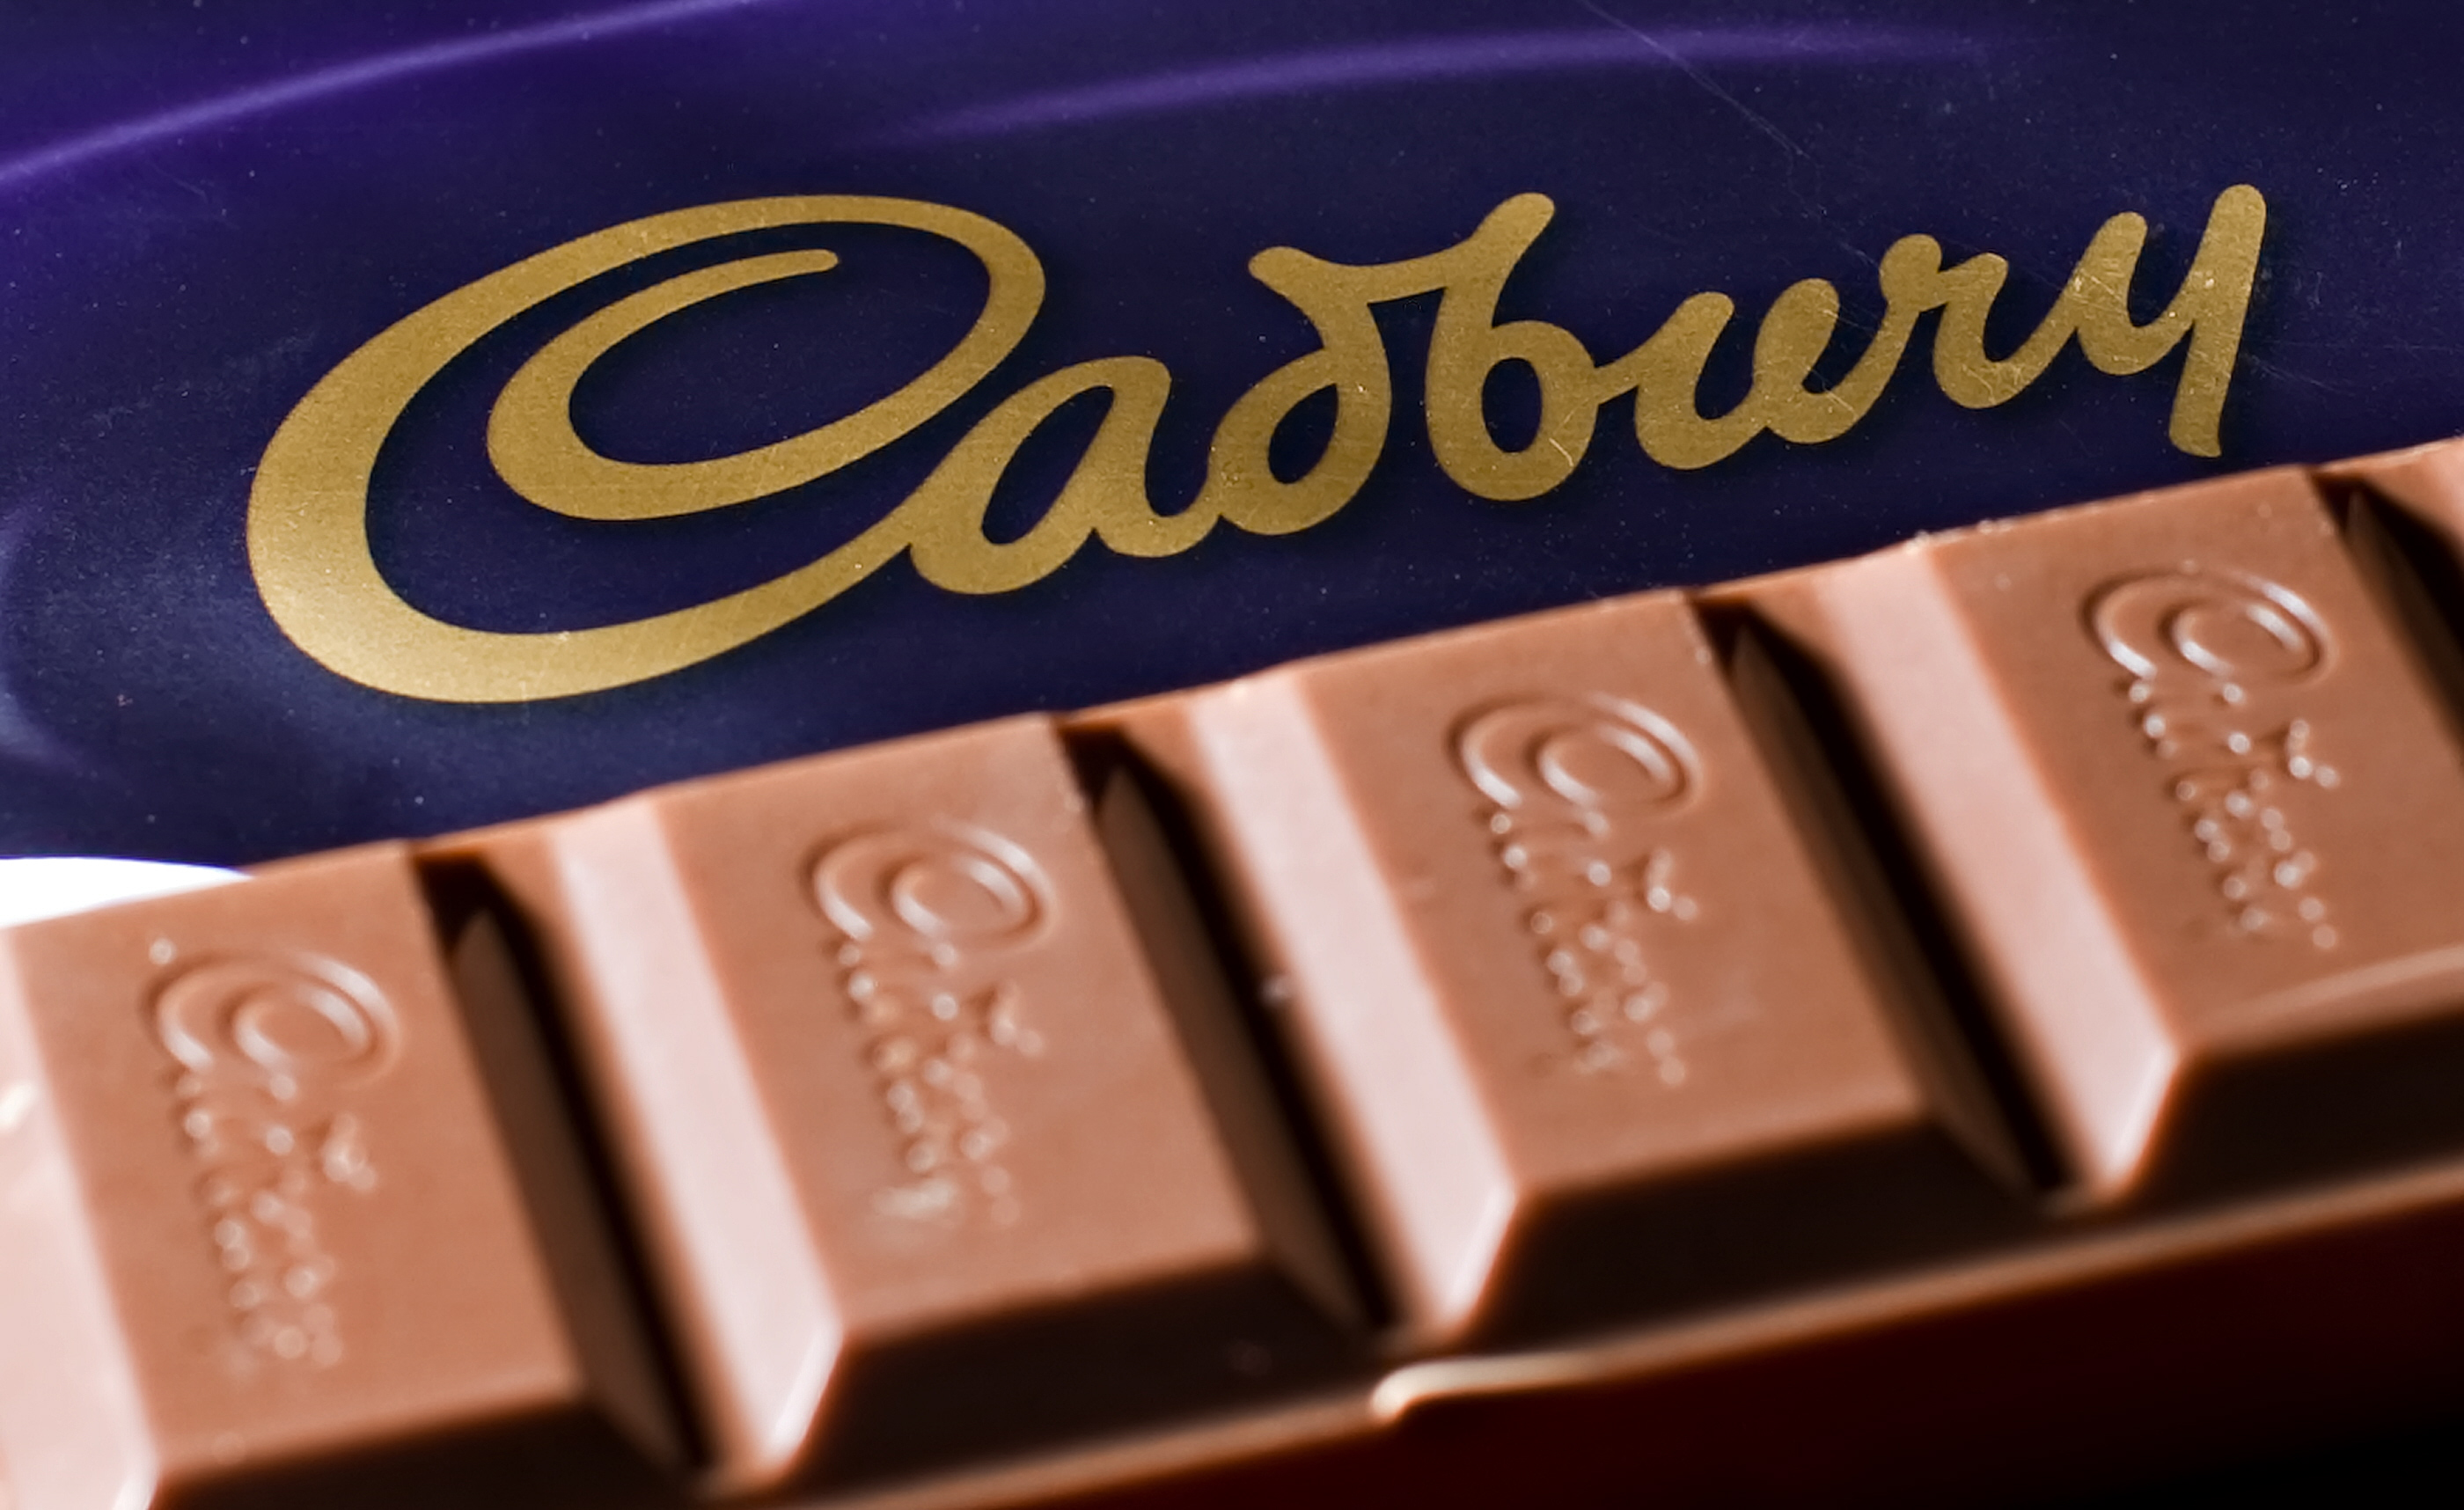 A bar of Cadbury's Dairy Milk chocolate